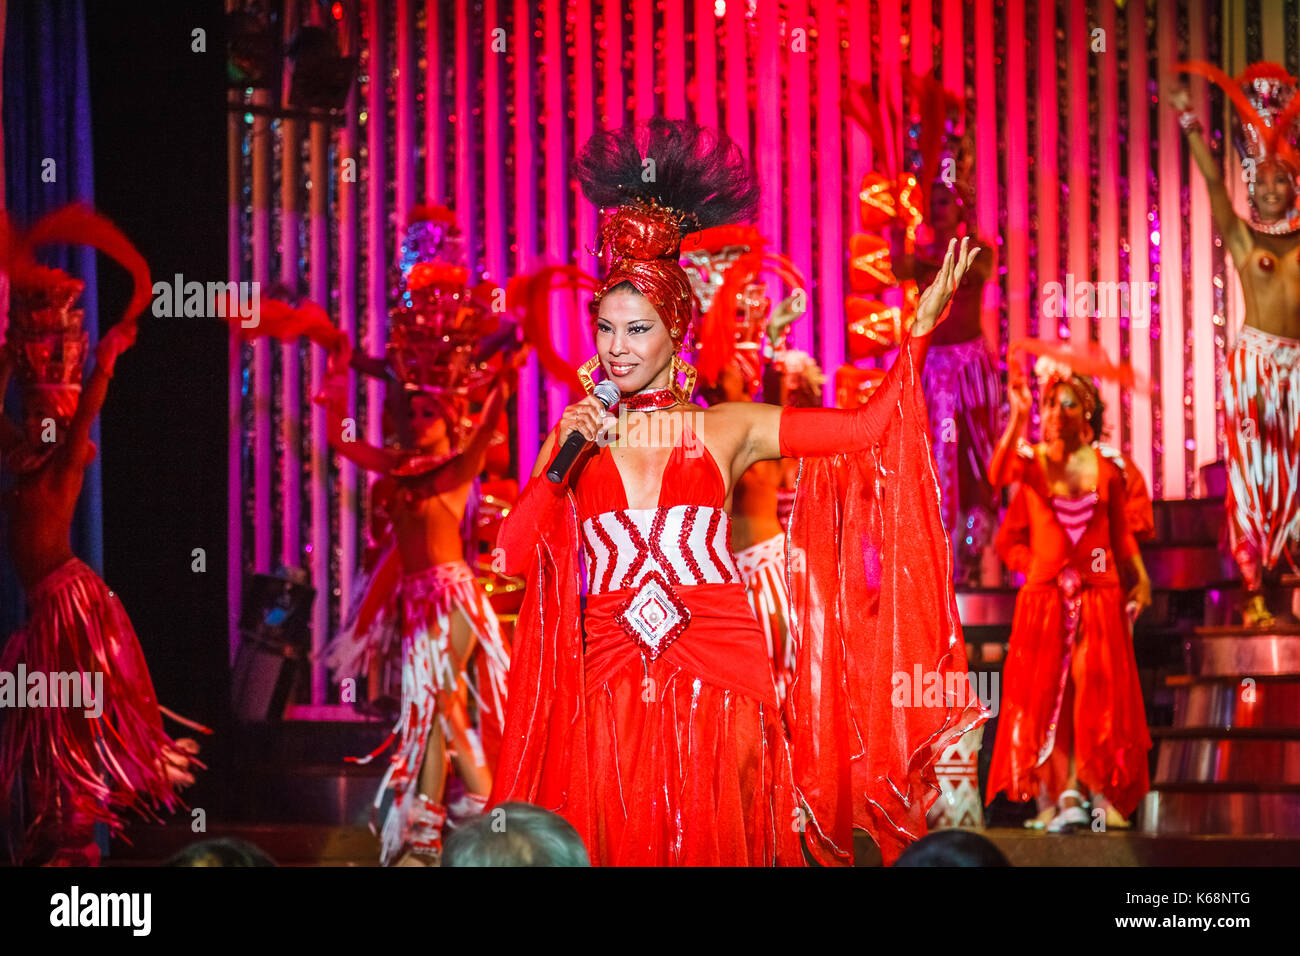 Singer in red dress and exotic dancers performing live on stage in colourful costumes in a cabaret show for tourists in a nightclub in Havana, Cuba - Stock Image